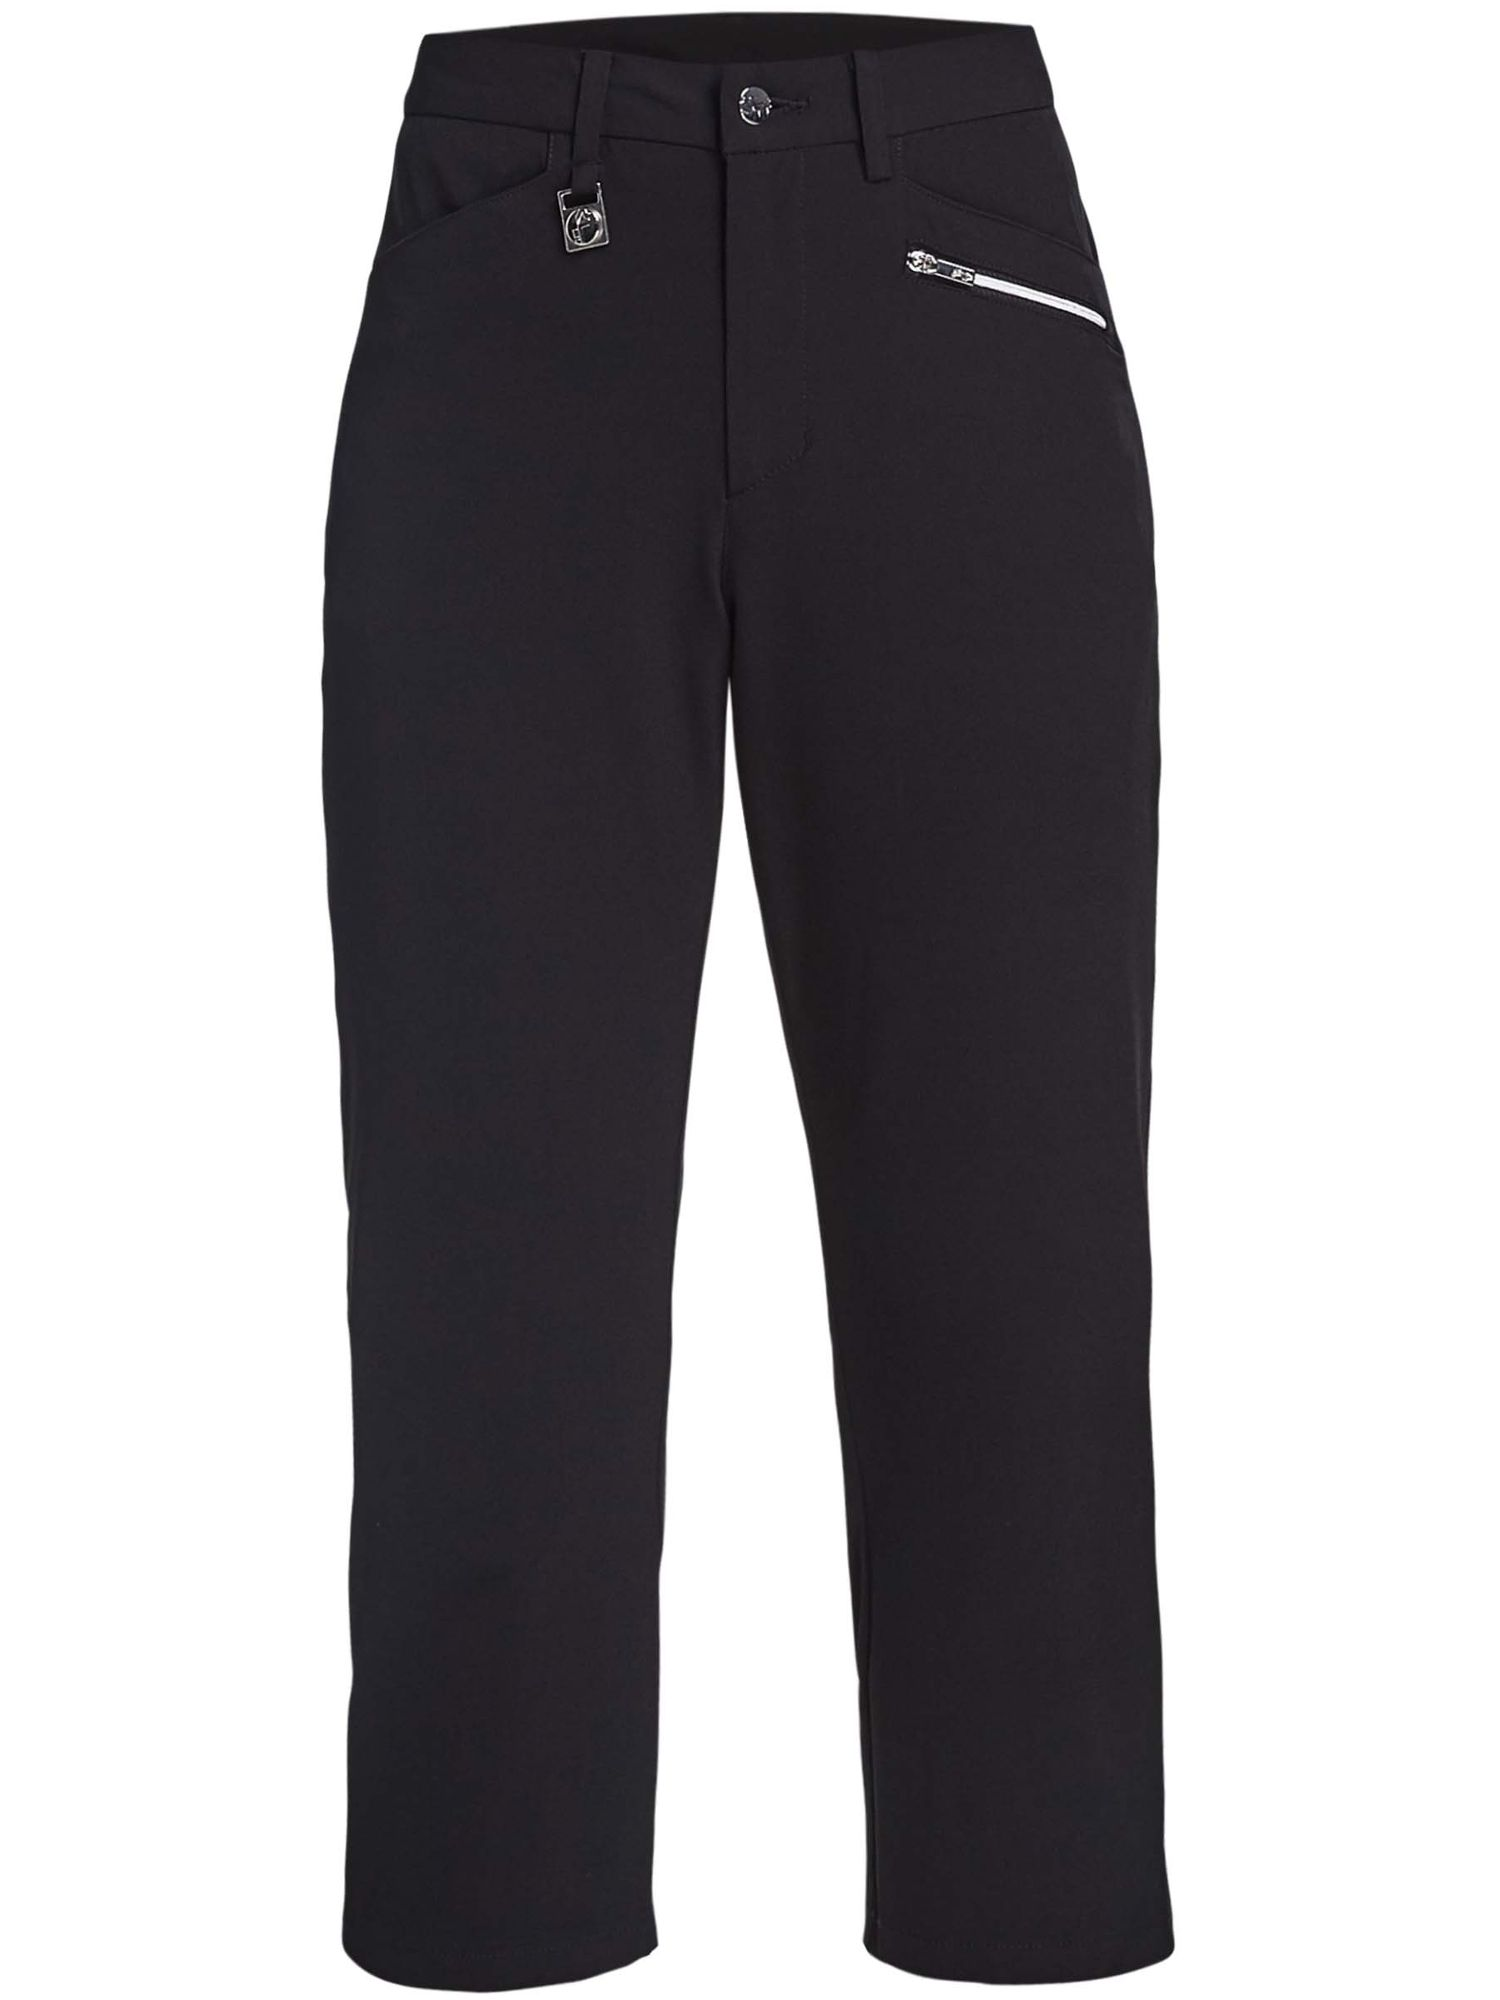 Rohnisch Comfort Stretch Capri, Black